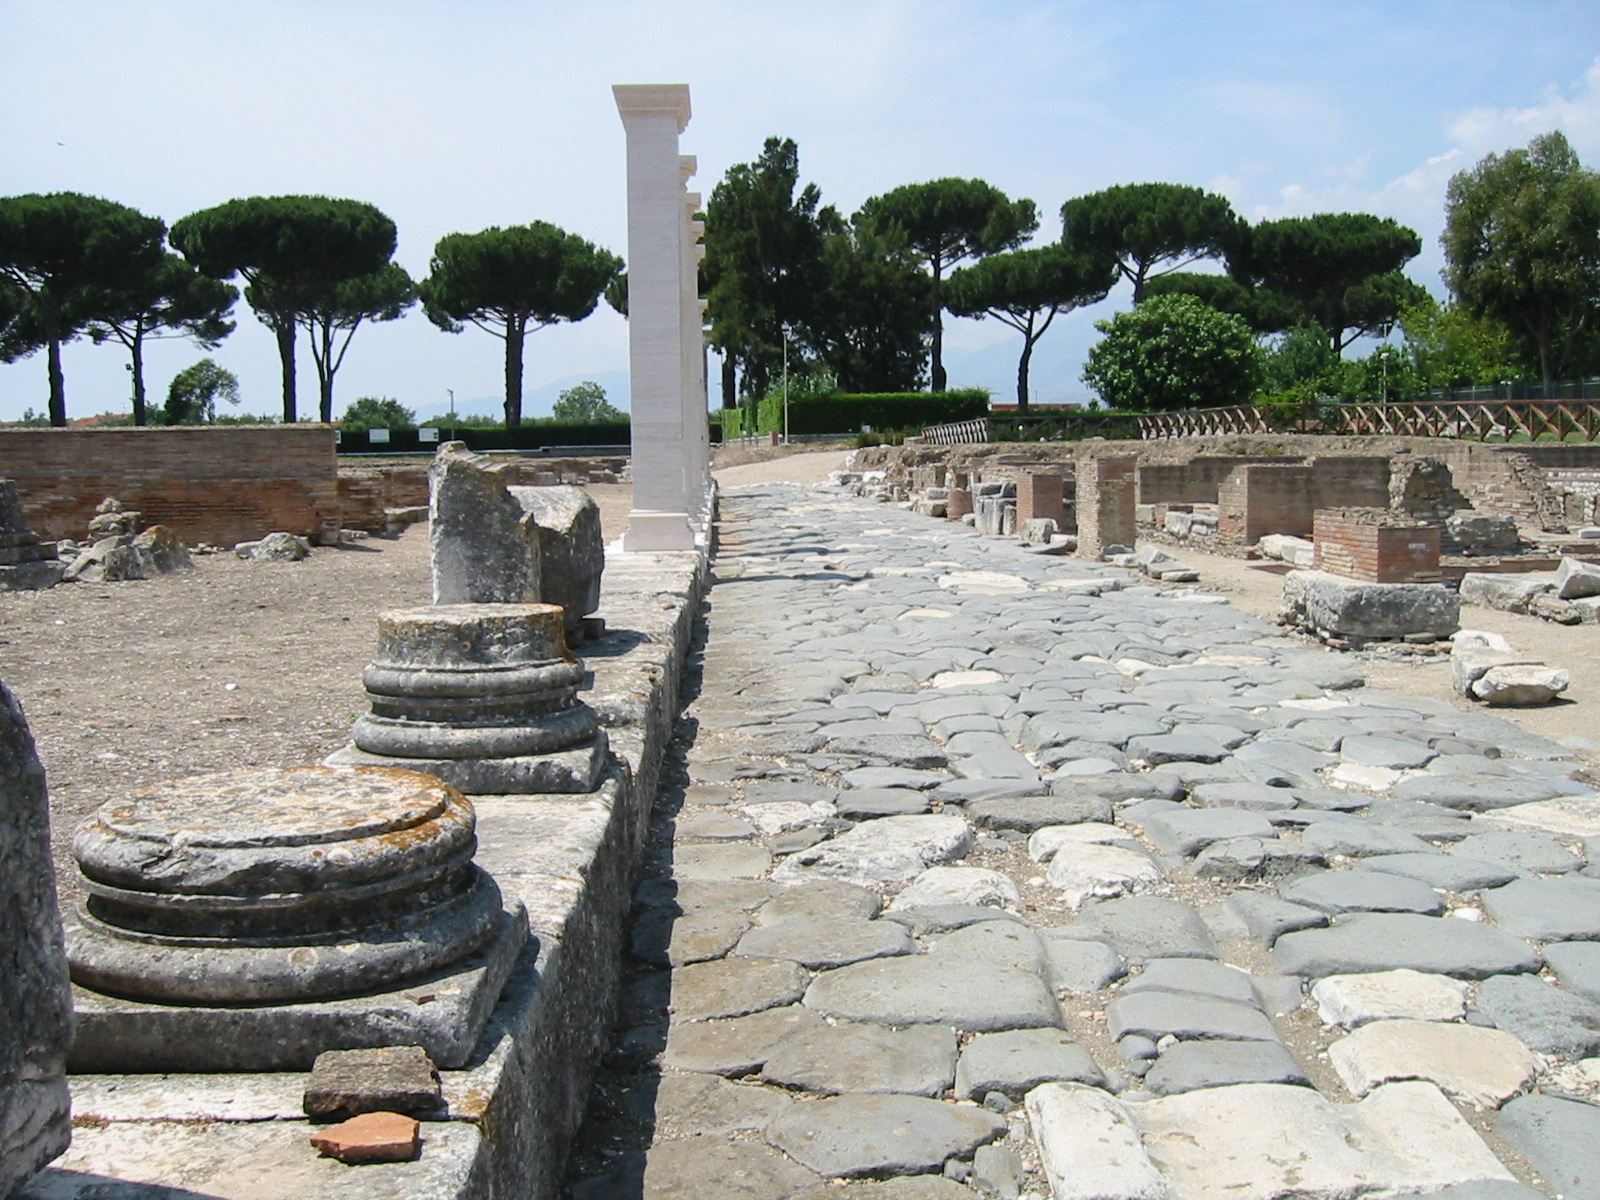 File:Minturno Via-Appia.jpg - Wikipedia, the free encyclopedia